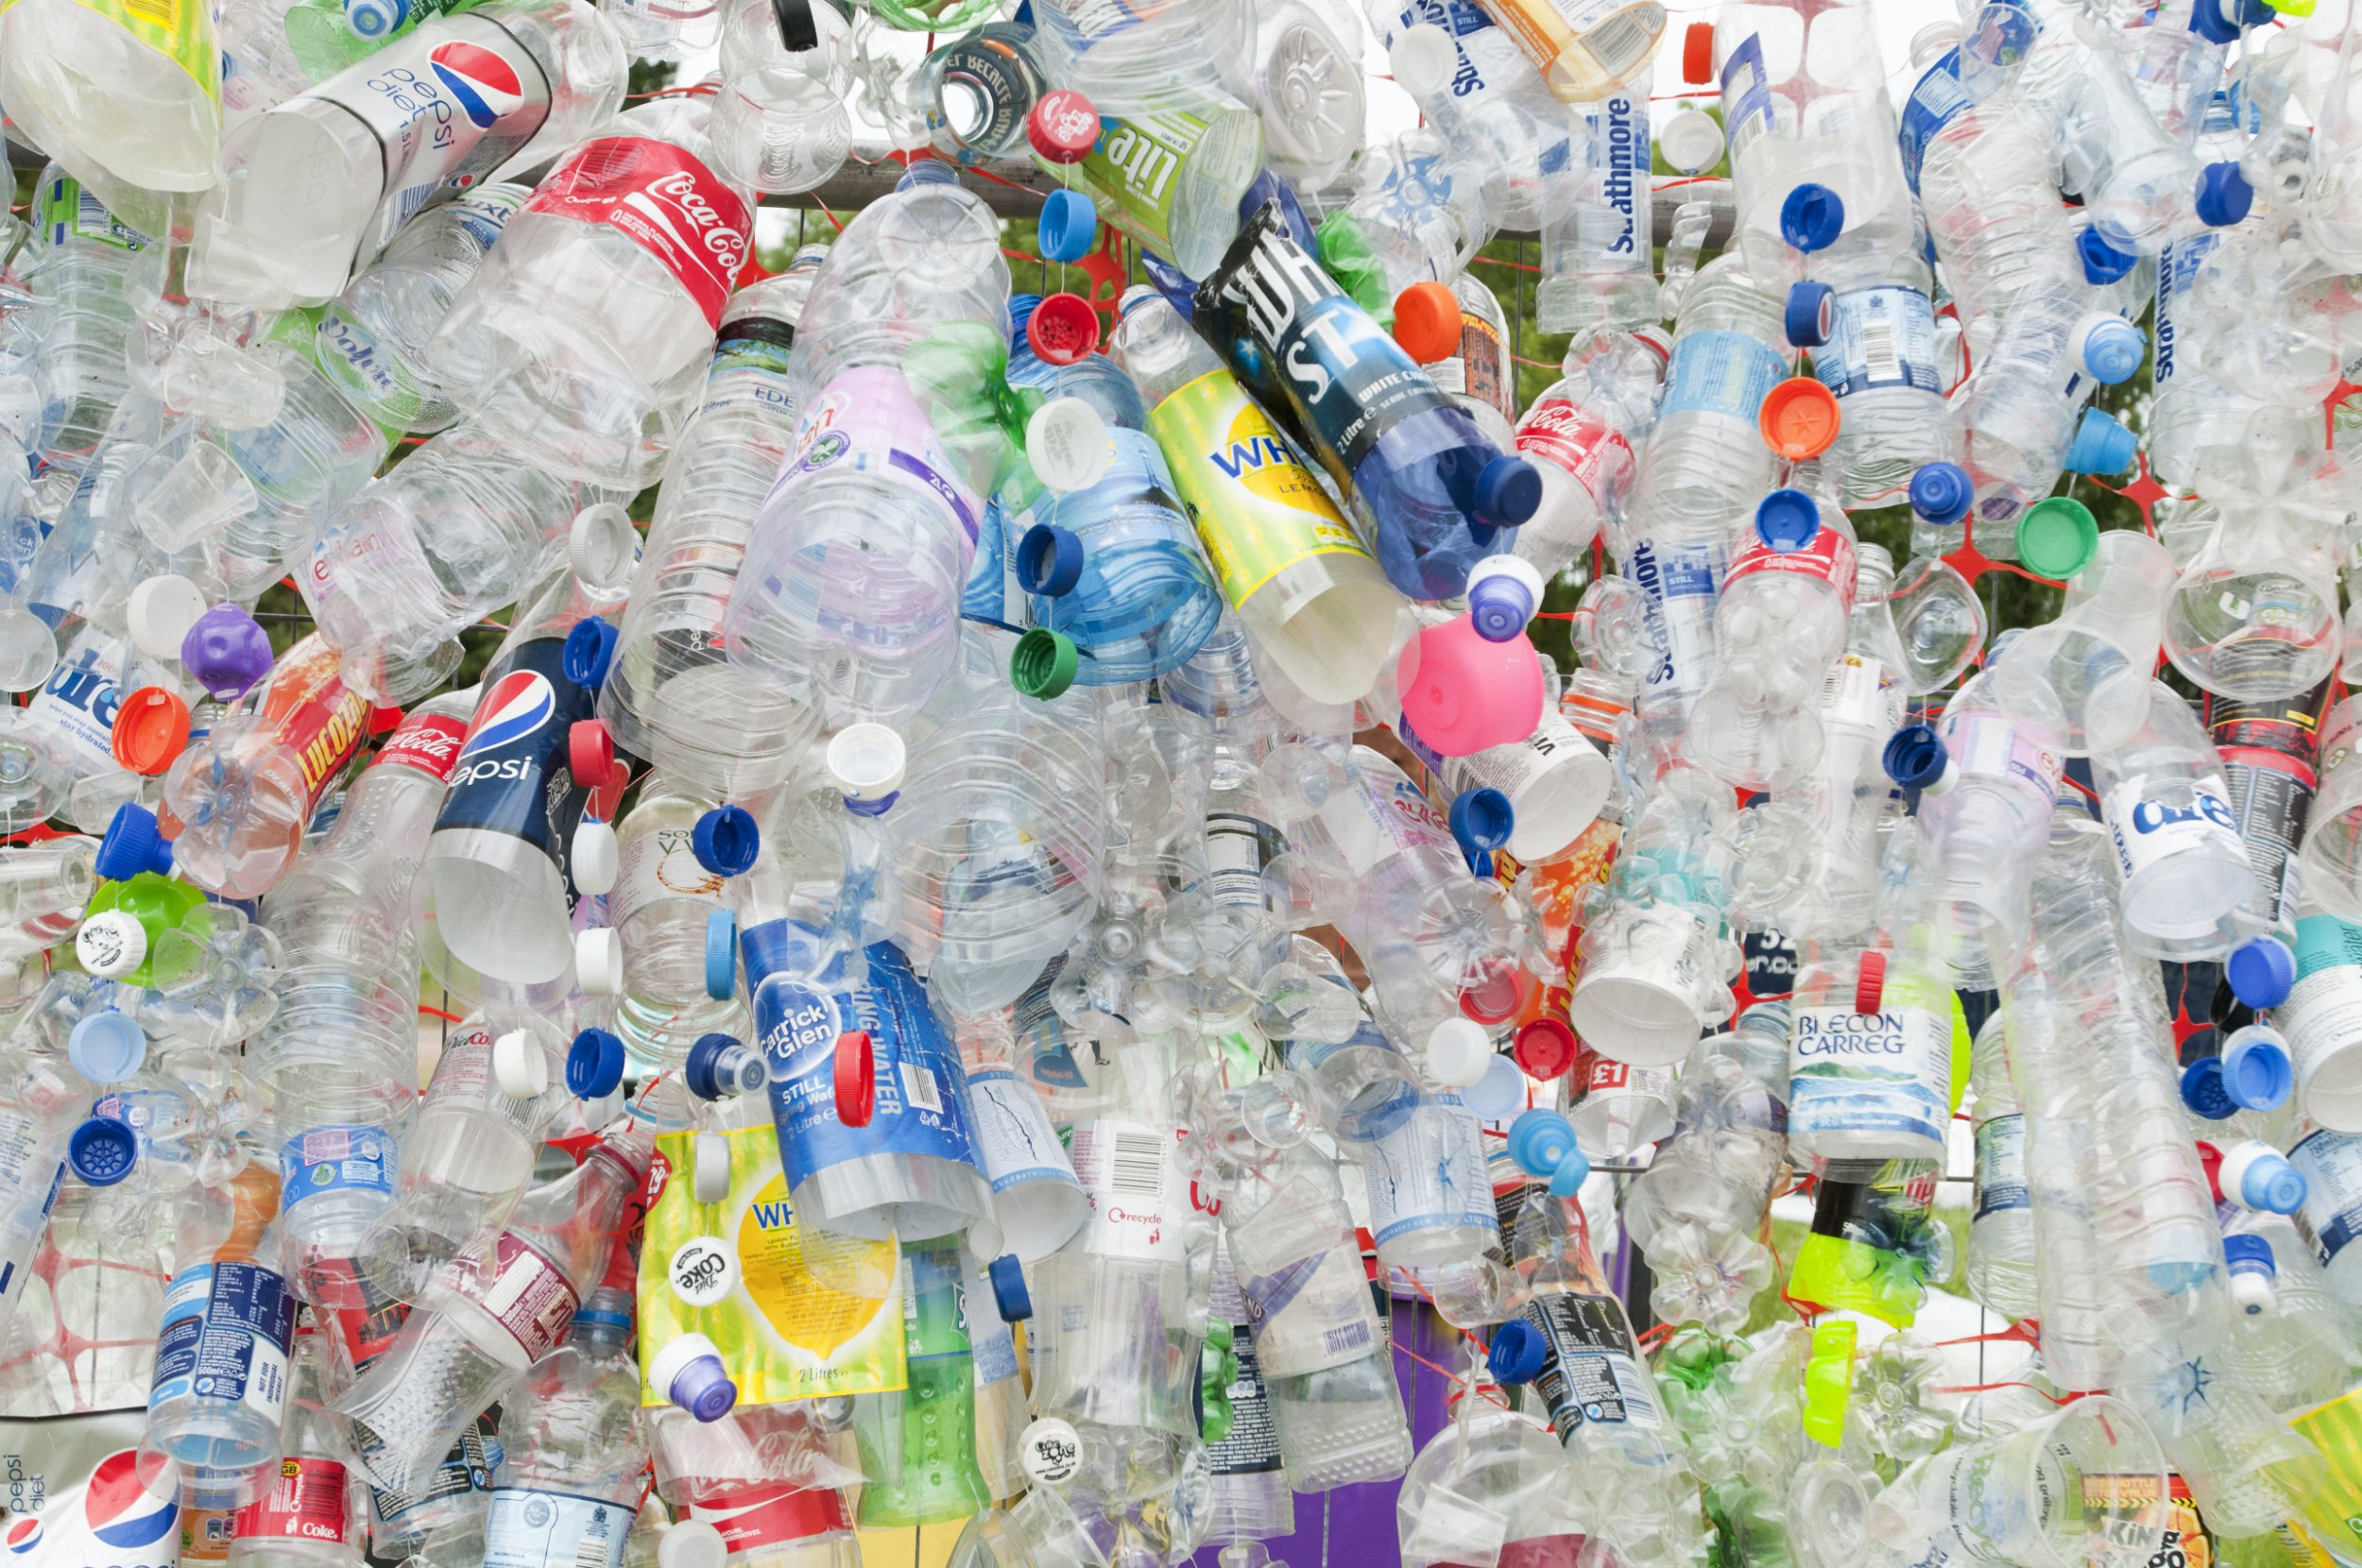 Shoppers face 'plastic tax' on bottles bought from supermarkets